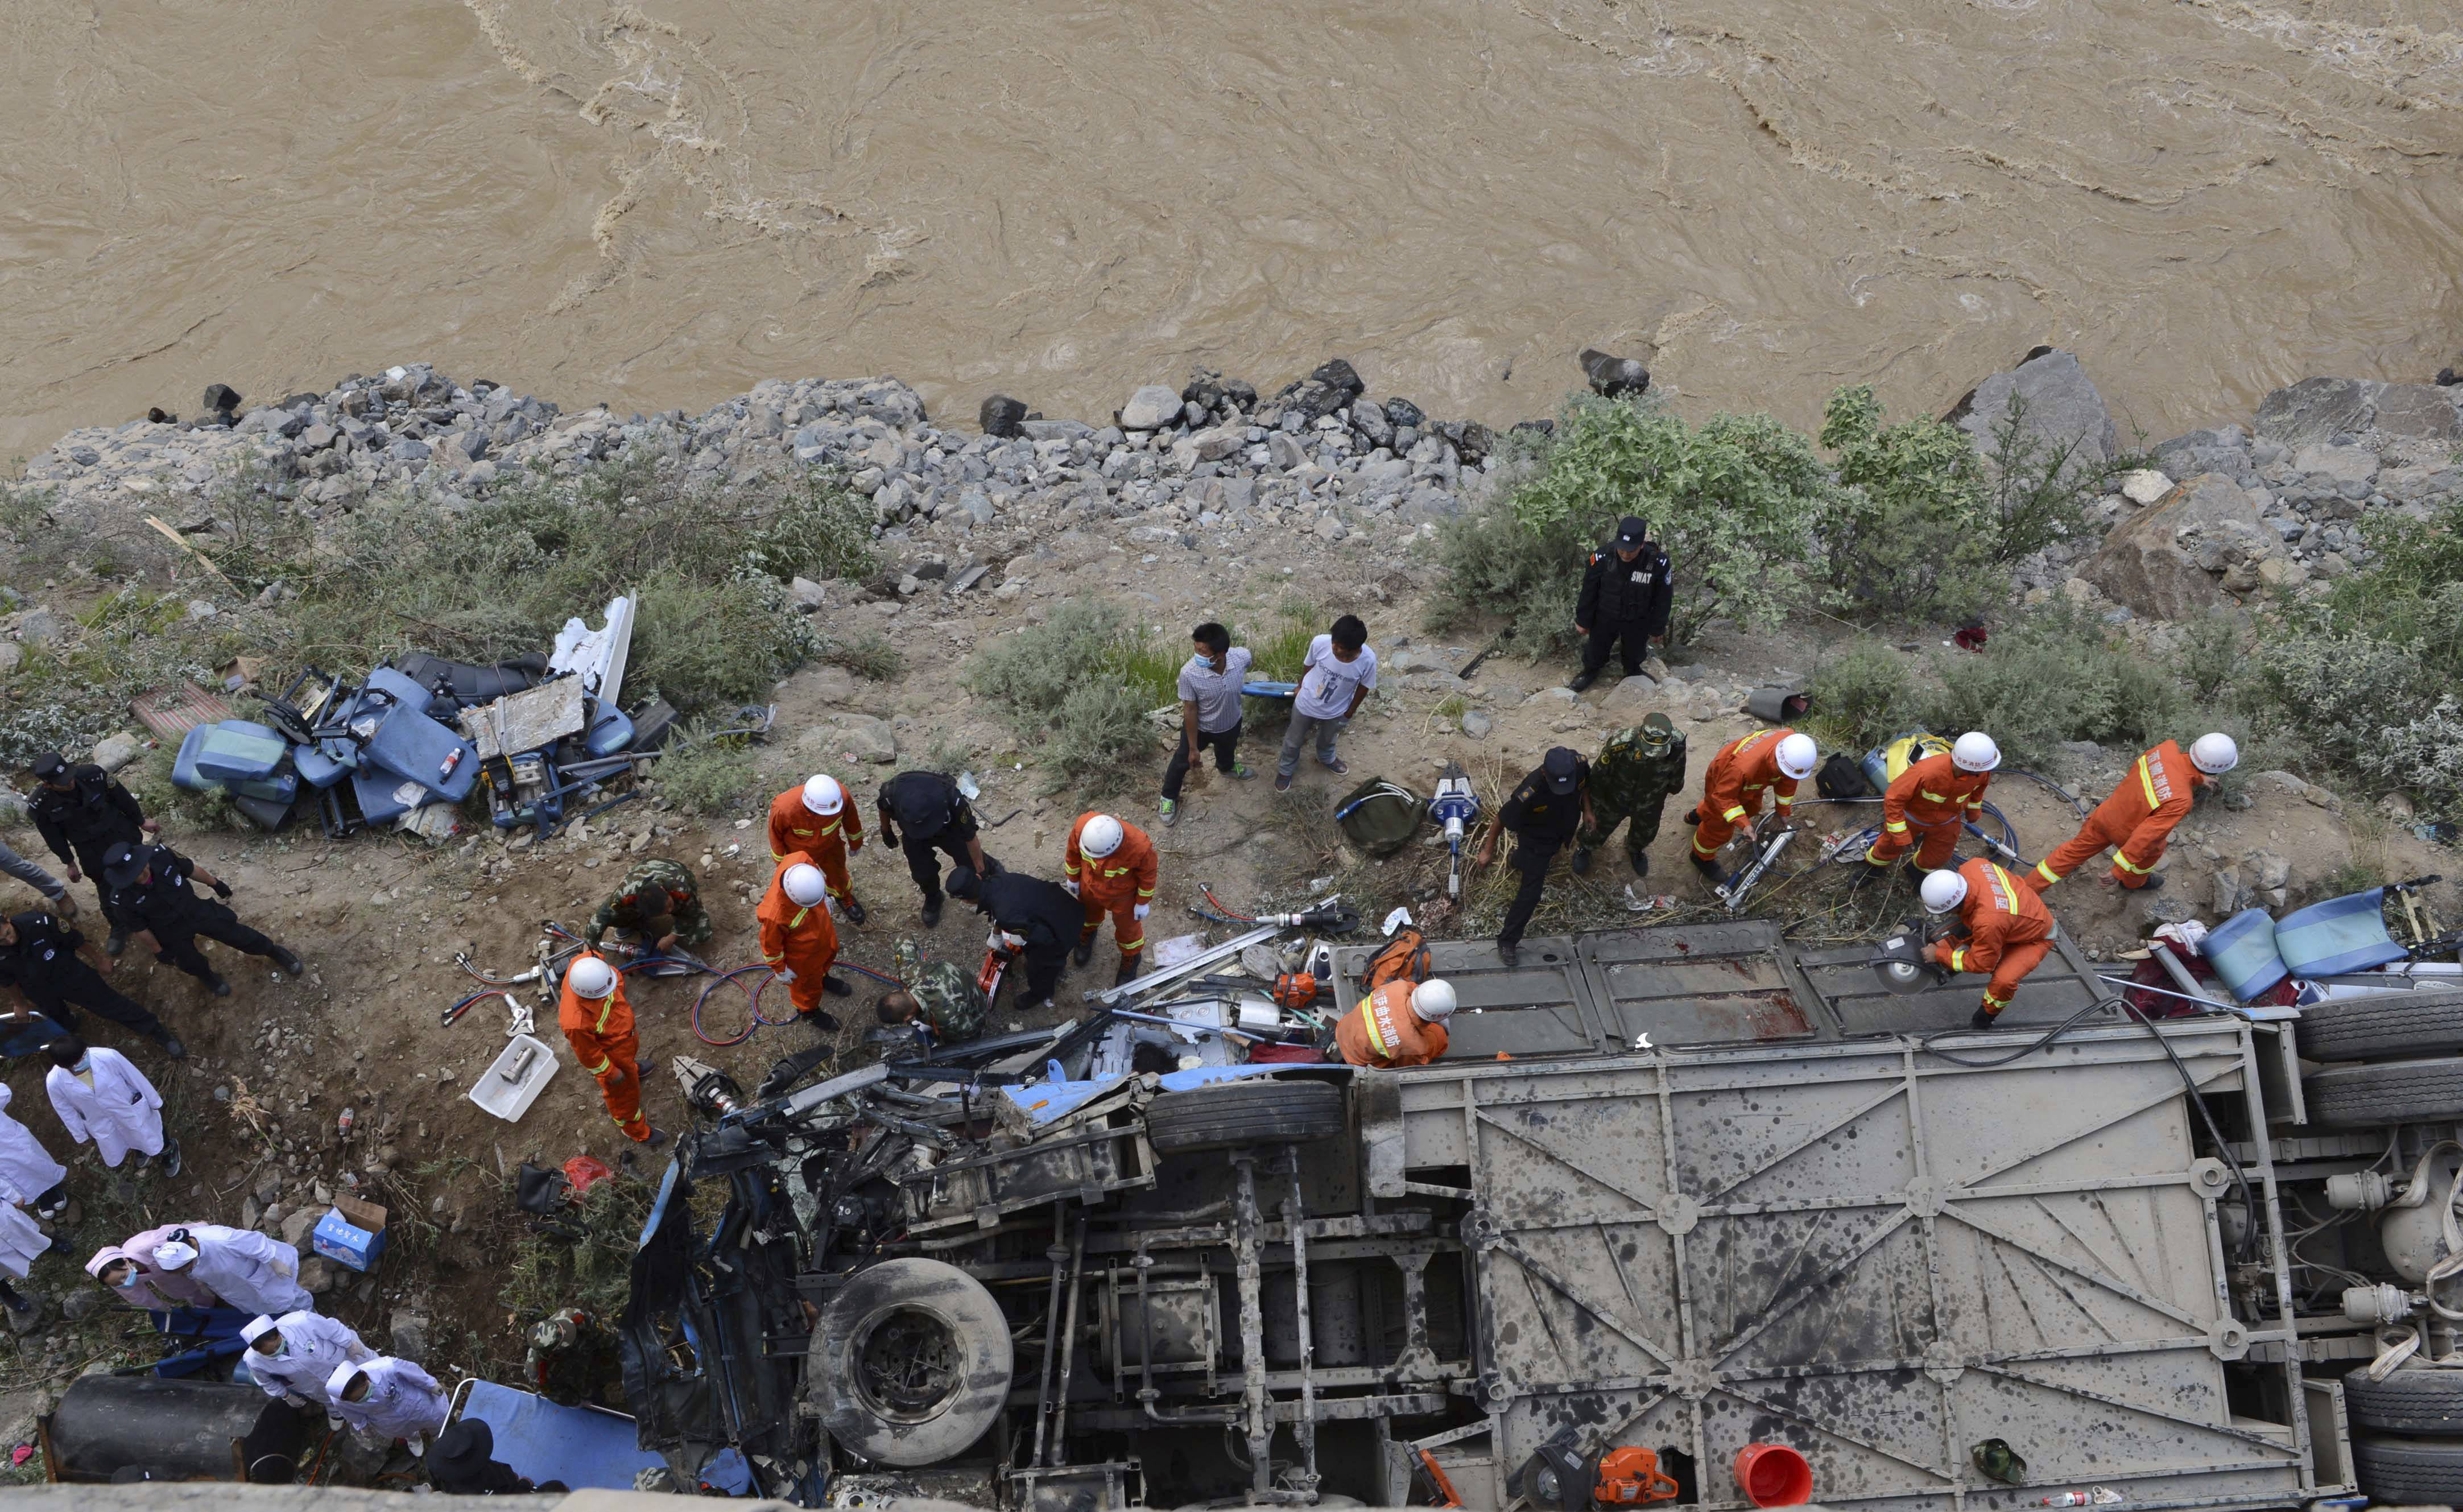 In this photo released by China's Xinhua News Agency, rescuers work around an overturned tour bus after it fell off a 10-meter (30-foot) cliff in Nyemo County, southwest China's mountainous region of Tibet Saturday, Aug. 9, 2014. Xinhua reported the bus carrying about 40 people careened after it crashed in a pileup involving a sports utility vehicle and a pickup truck on a state road. Casualty details were not immediately known.